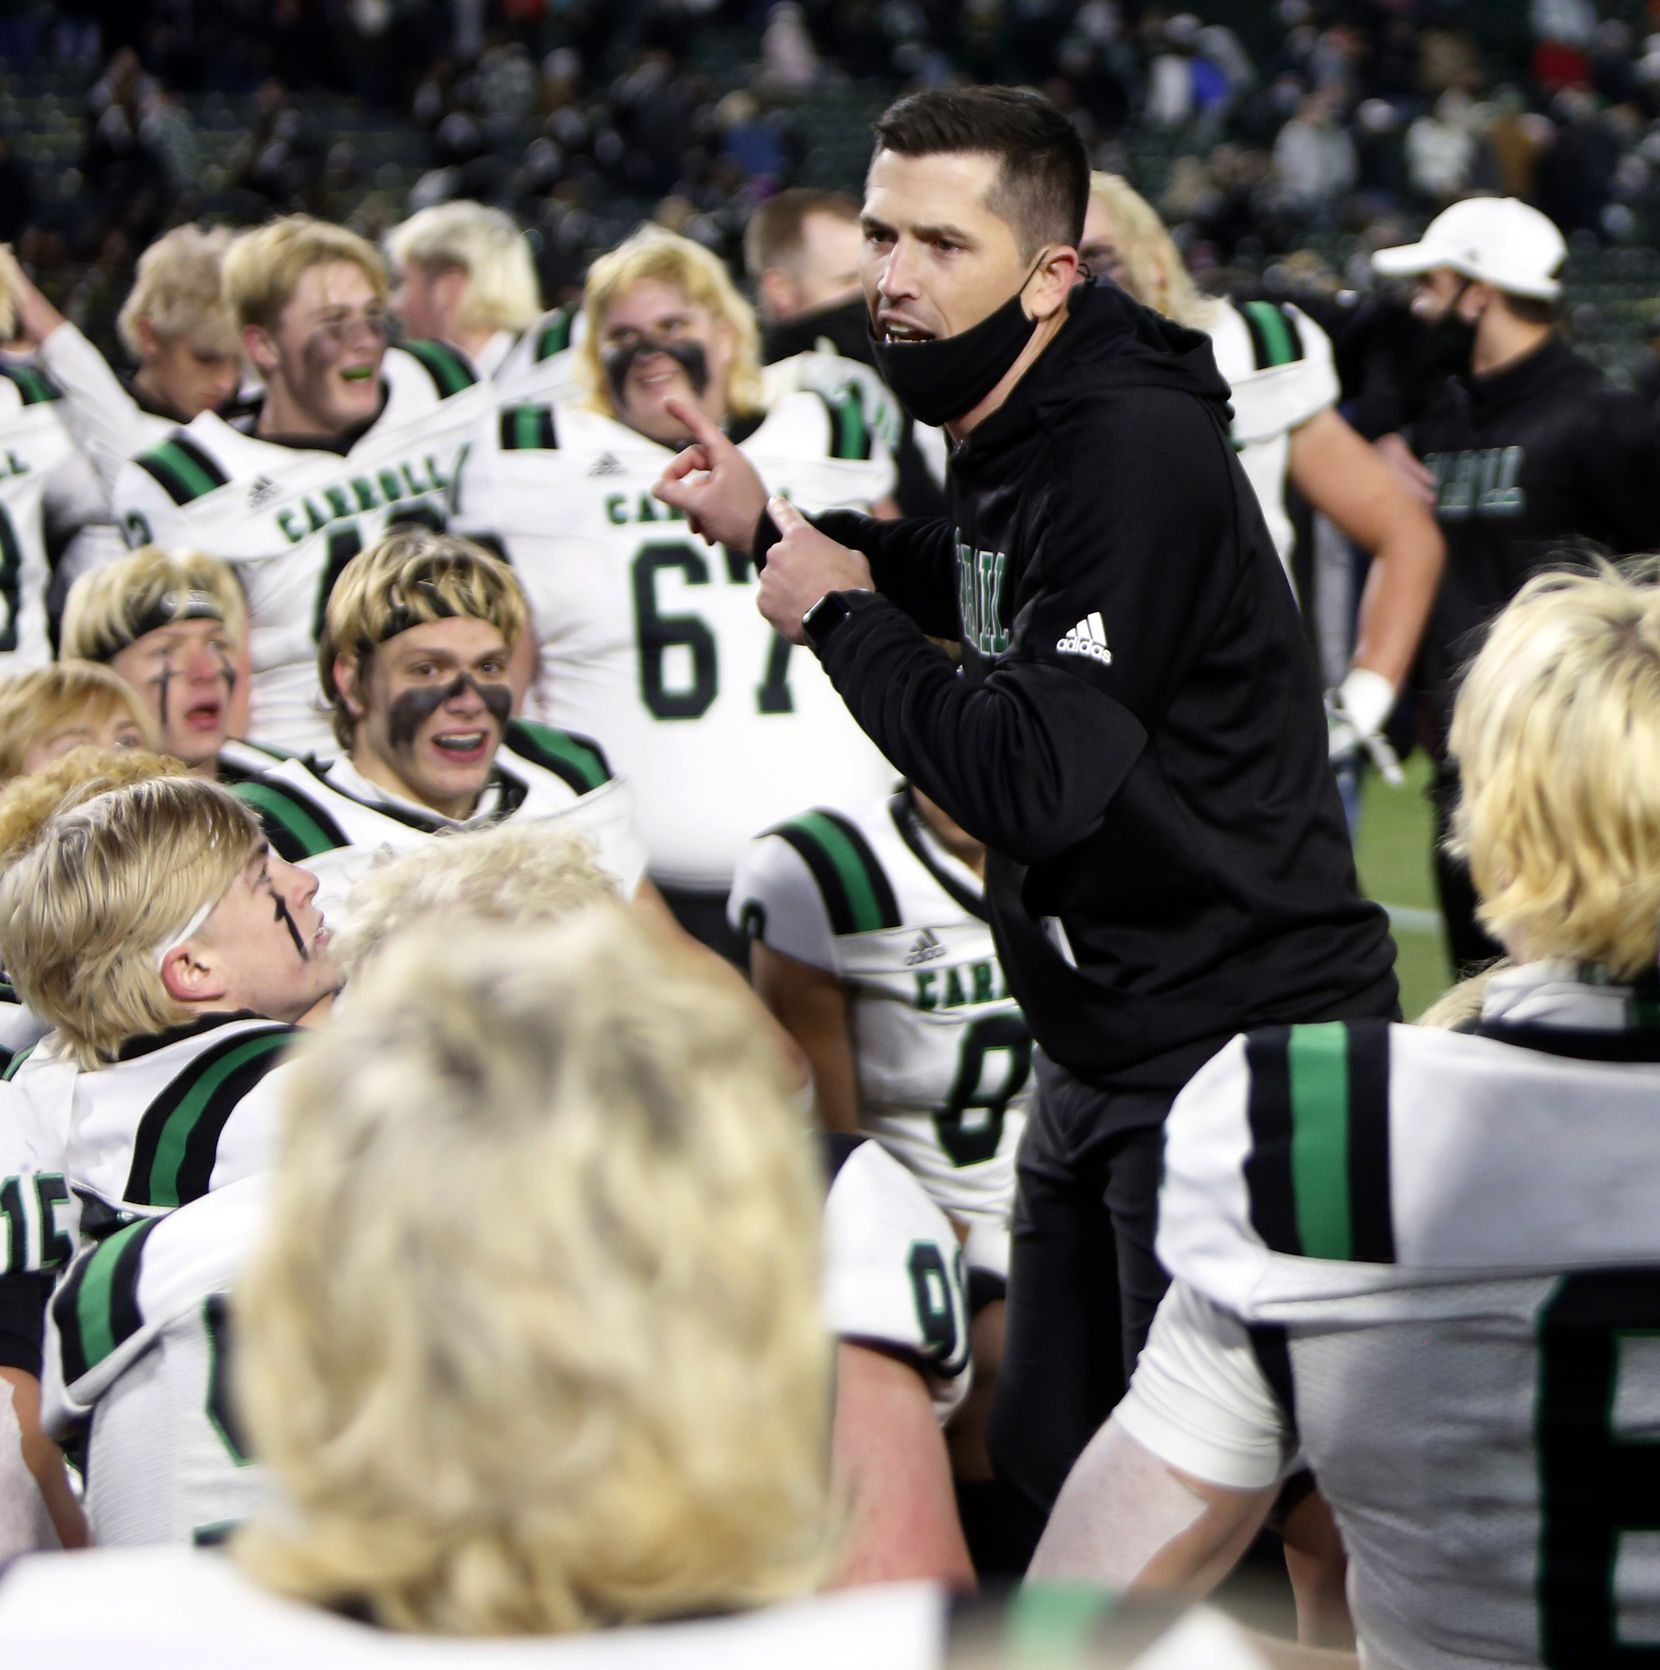 Southlake head coach Riley Dodge speaks with his players following their 30-26 victory over Arlington Martin to advance. The two teams played their Class 6A Division l Region l semifinal football playoff game held at Globe Life Park in Arlington on December 24, 2020. (Steve Hamm/ Special Contributor)